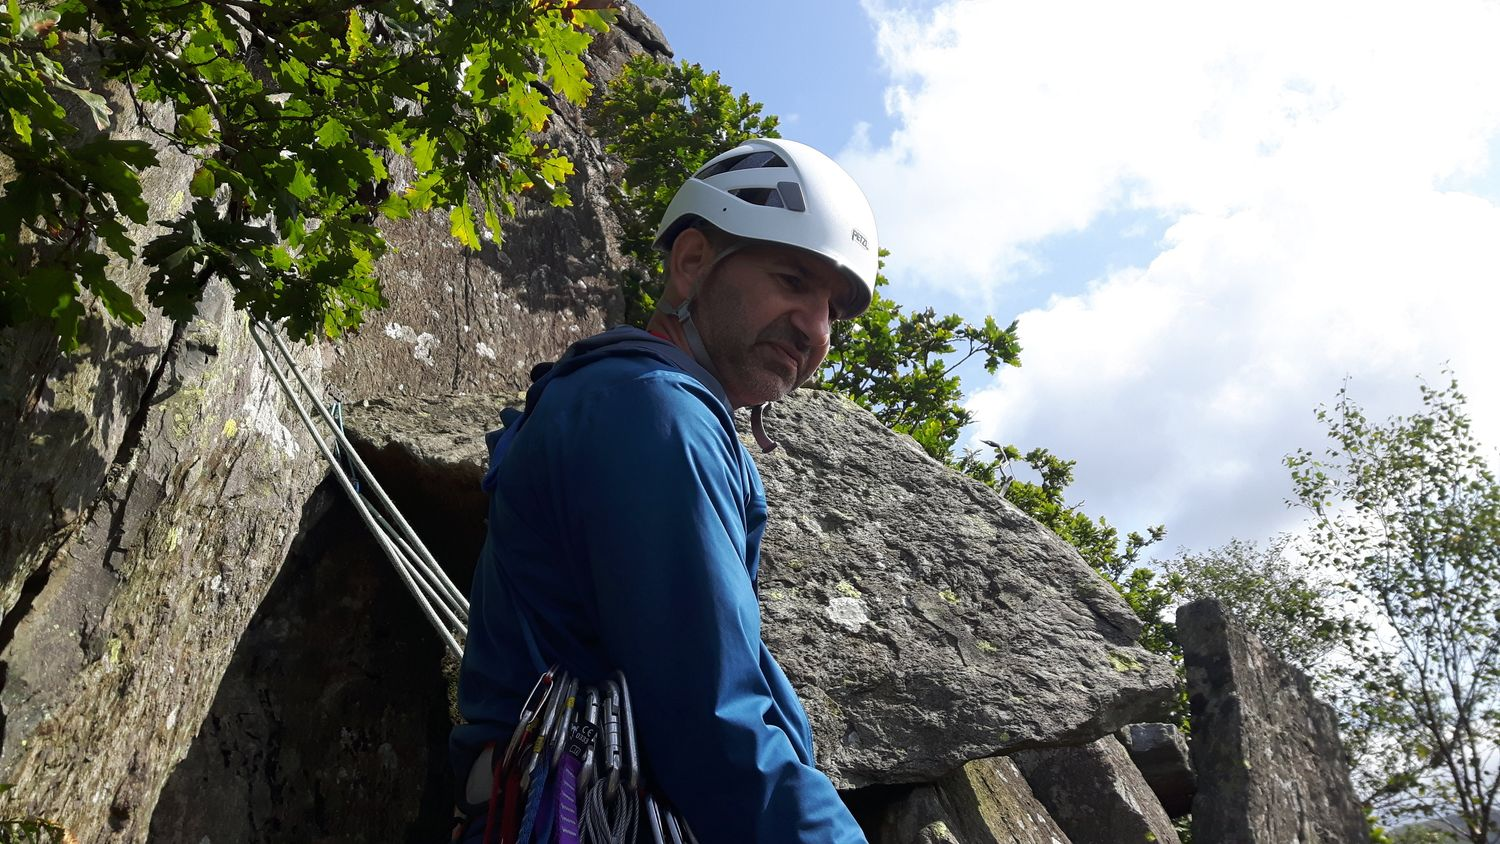 John belaying for his sons during two days of guiding in August 2018